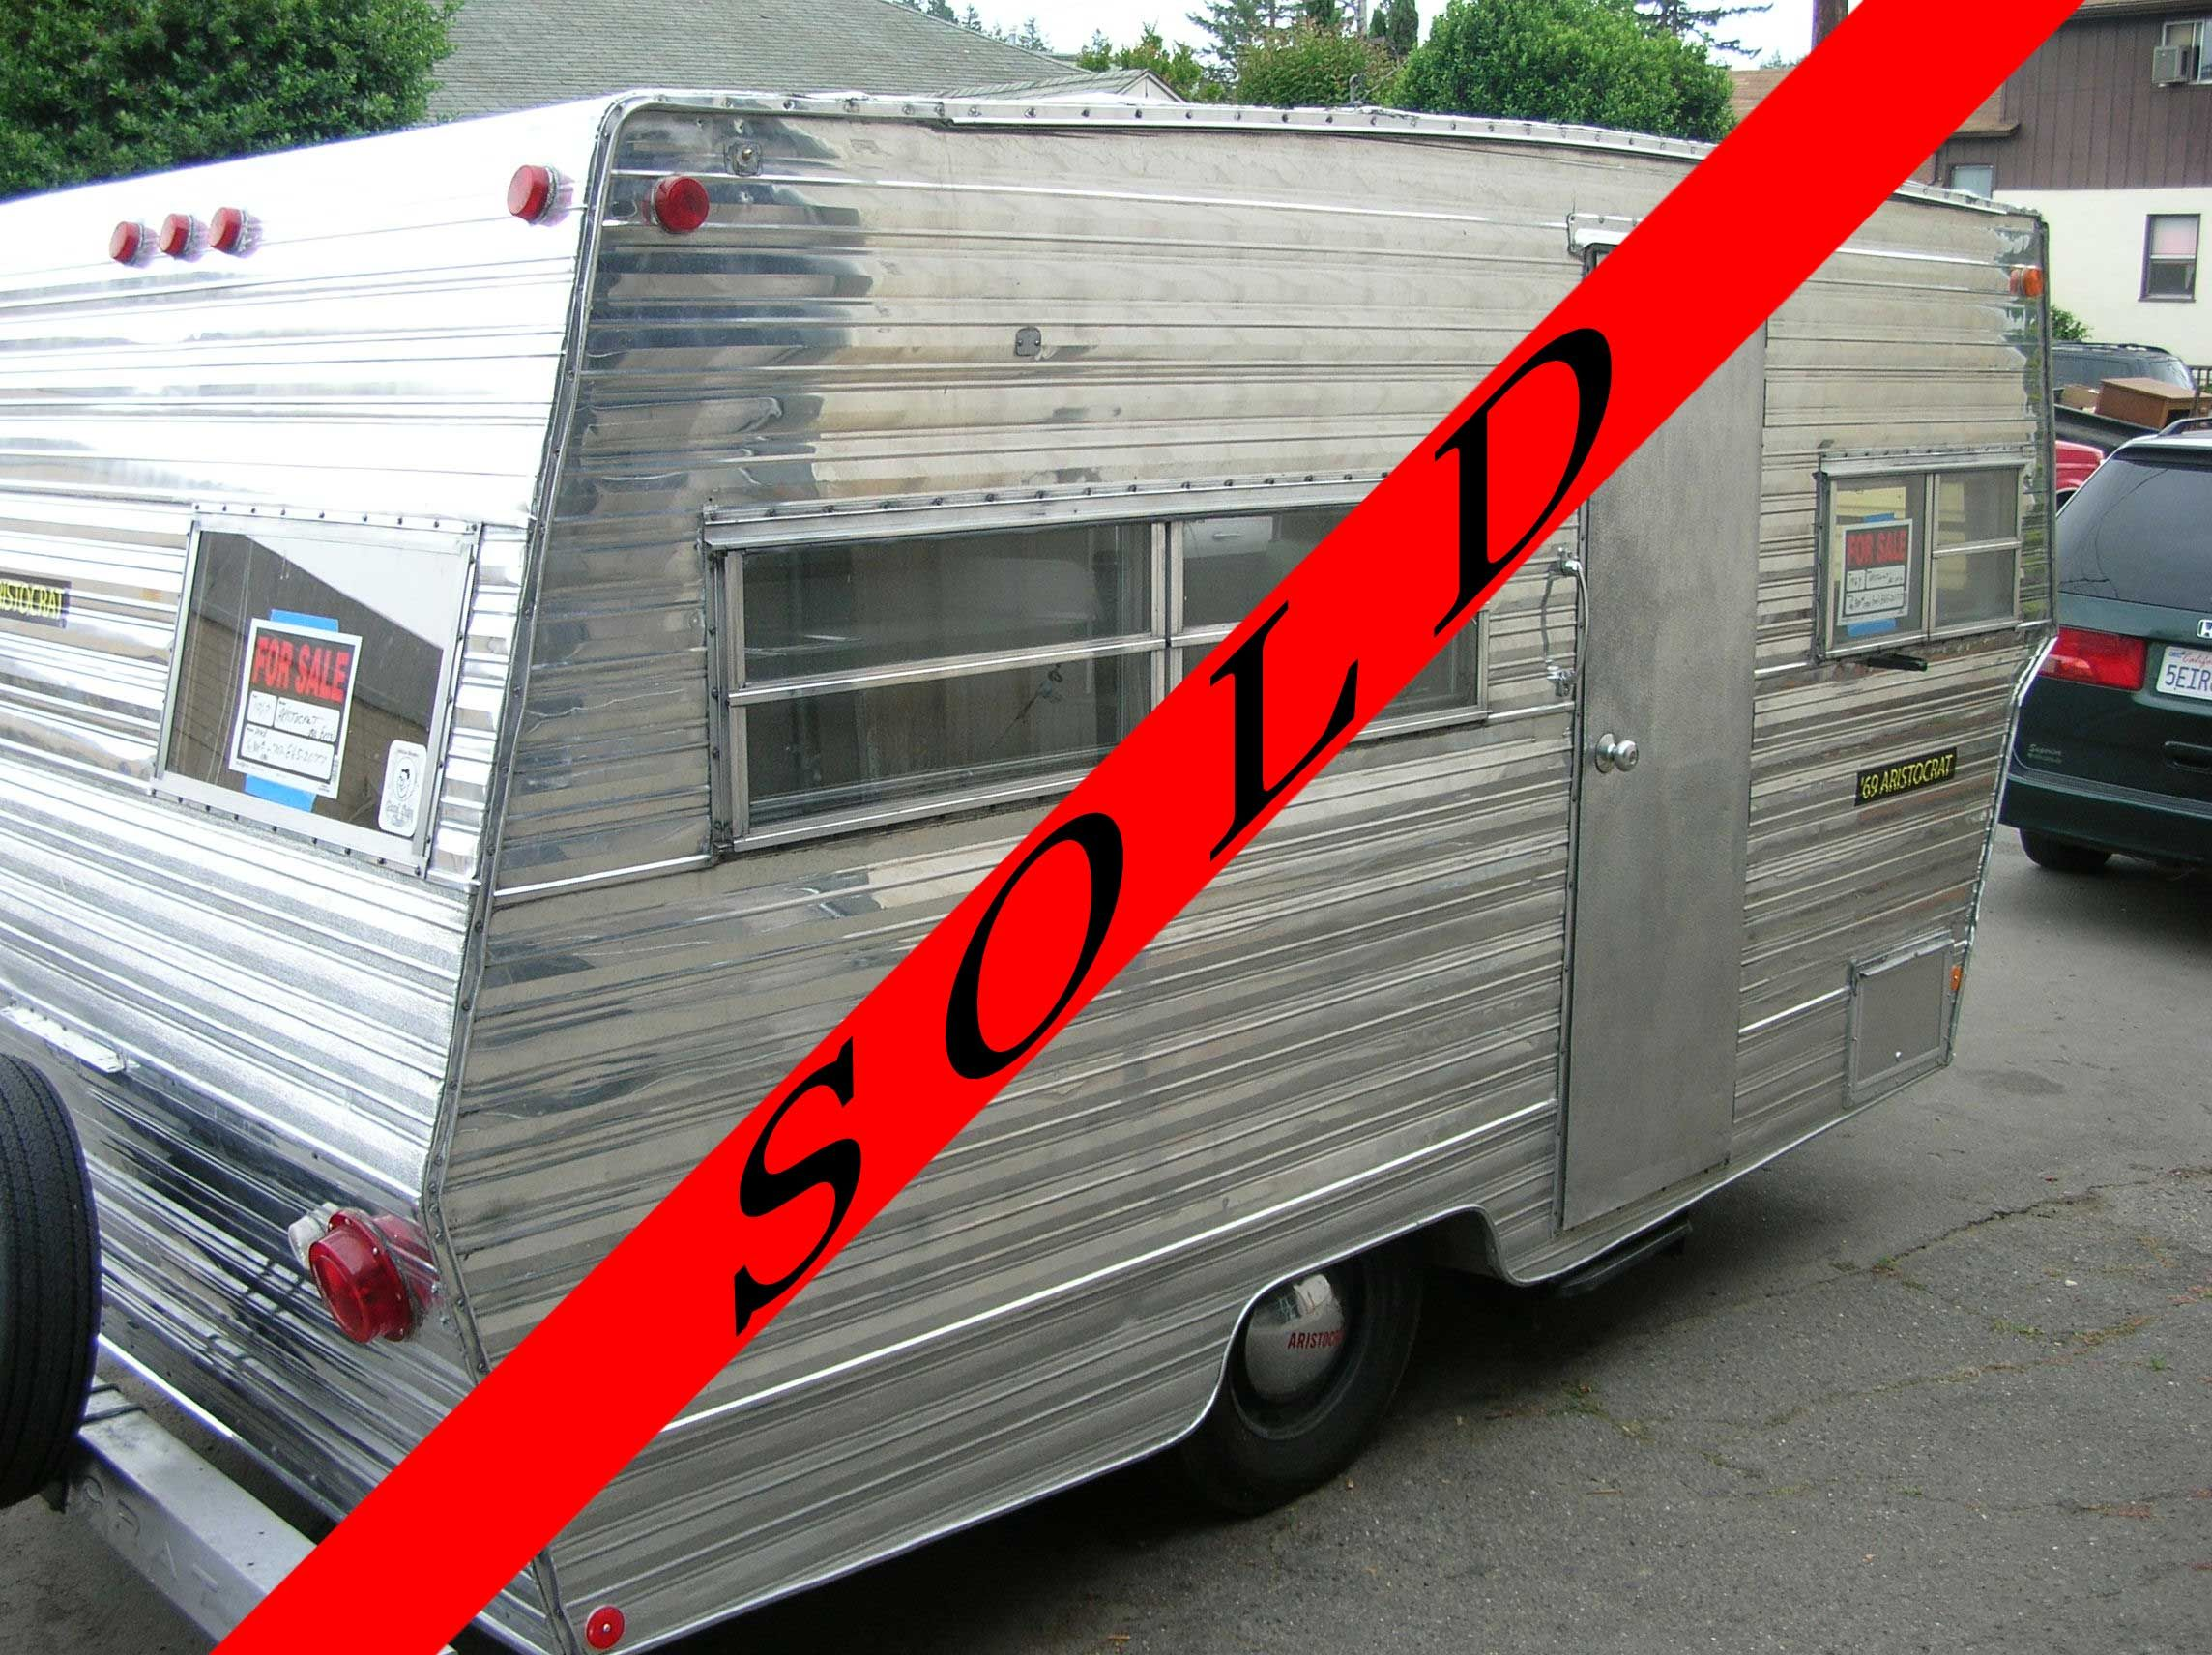 Russian river vintage travel trailers